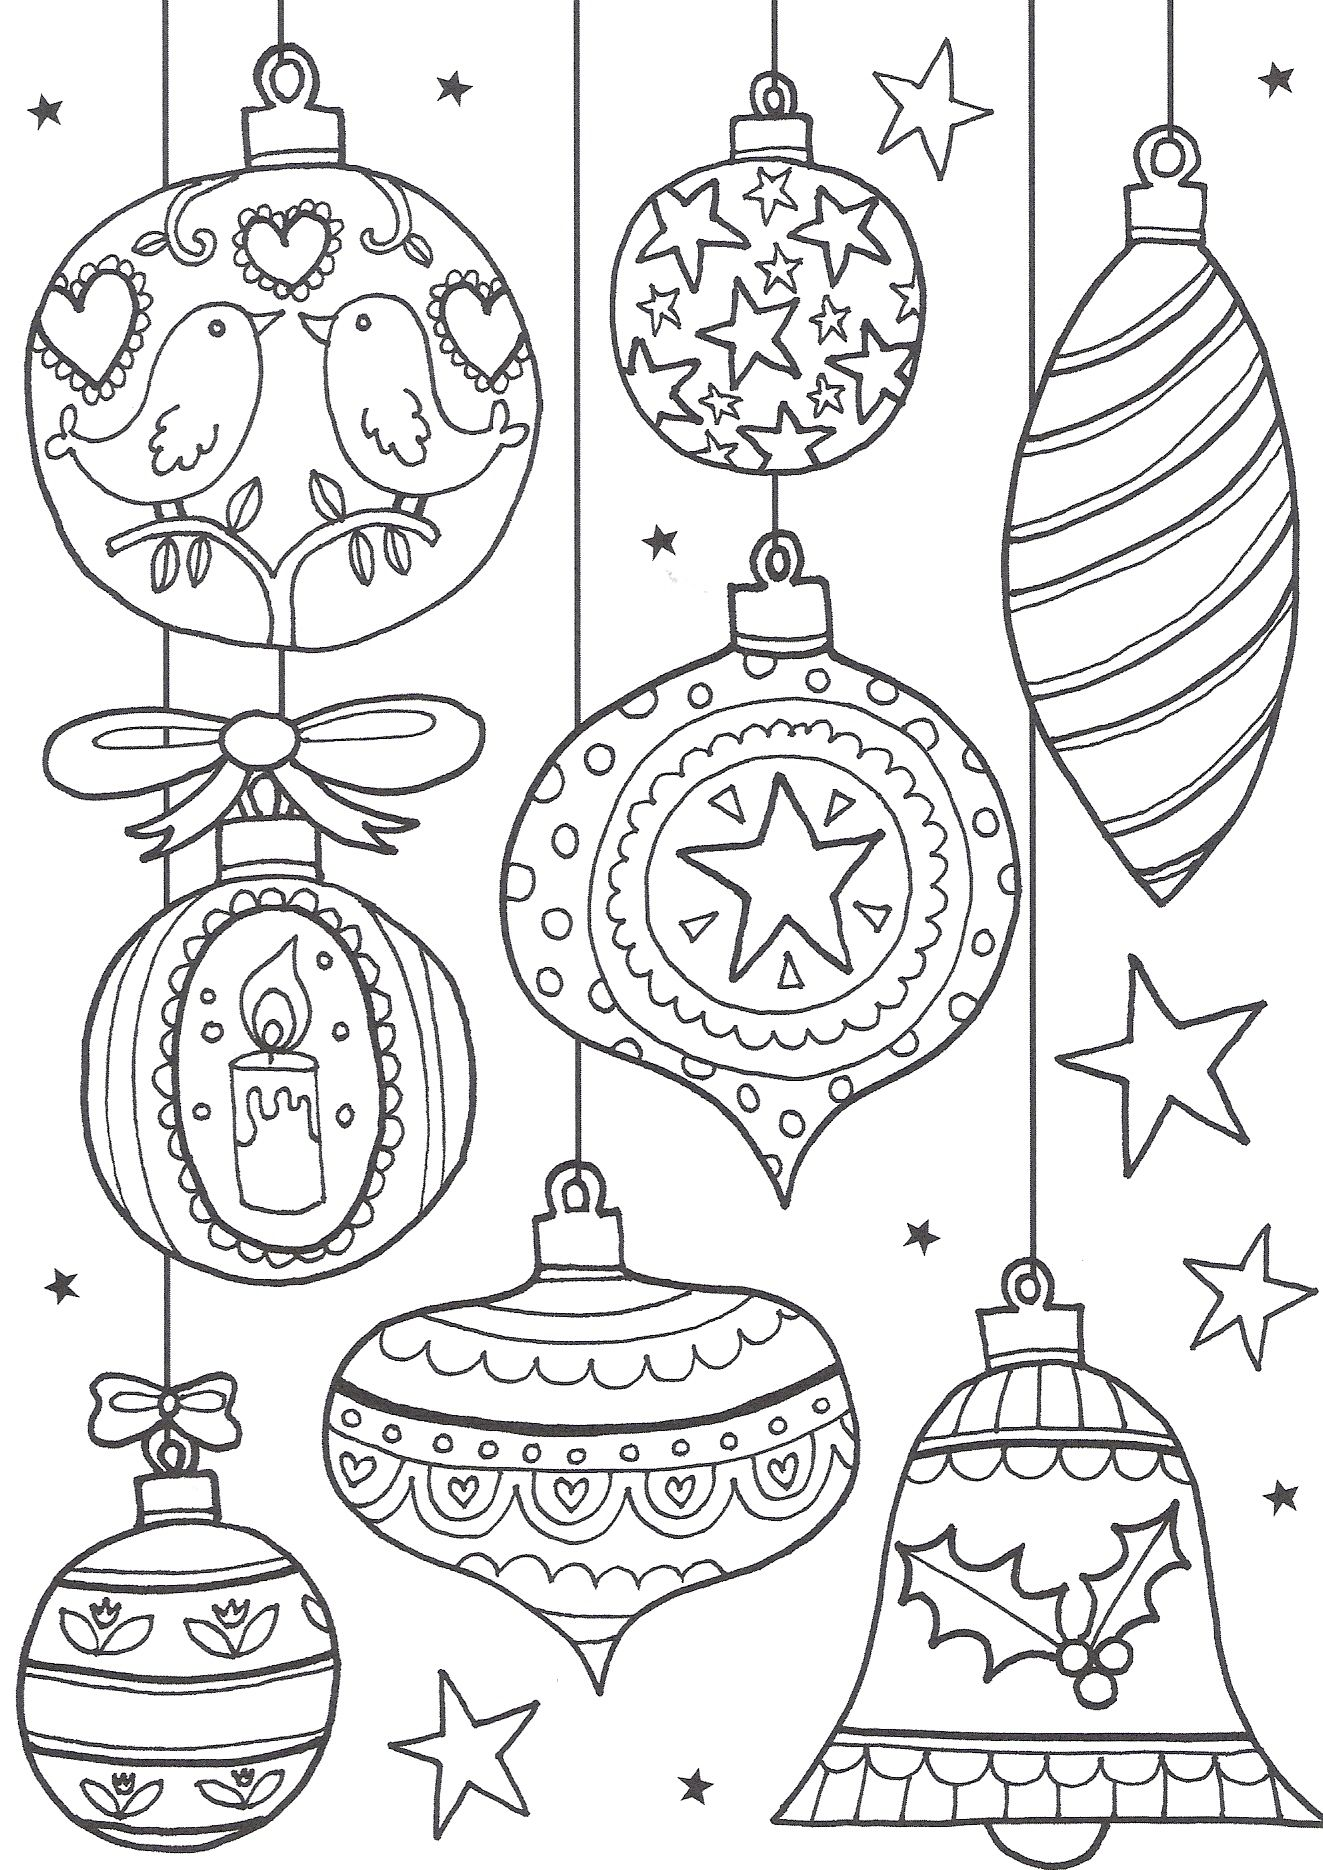 Christmas Art Coloring Pages With Free Colouring For Adults The Ultimate Roundup